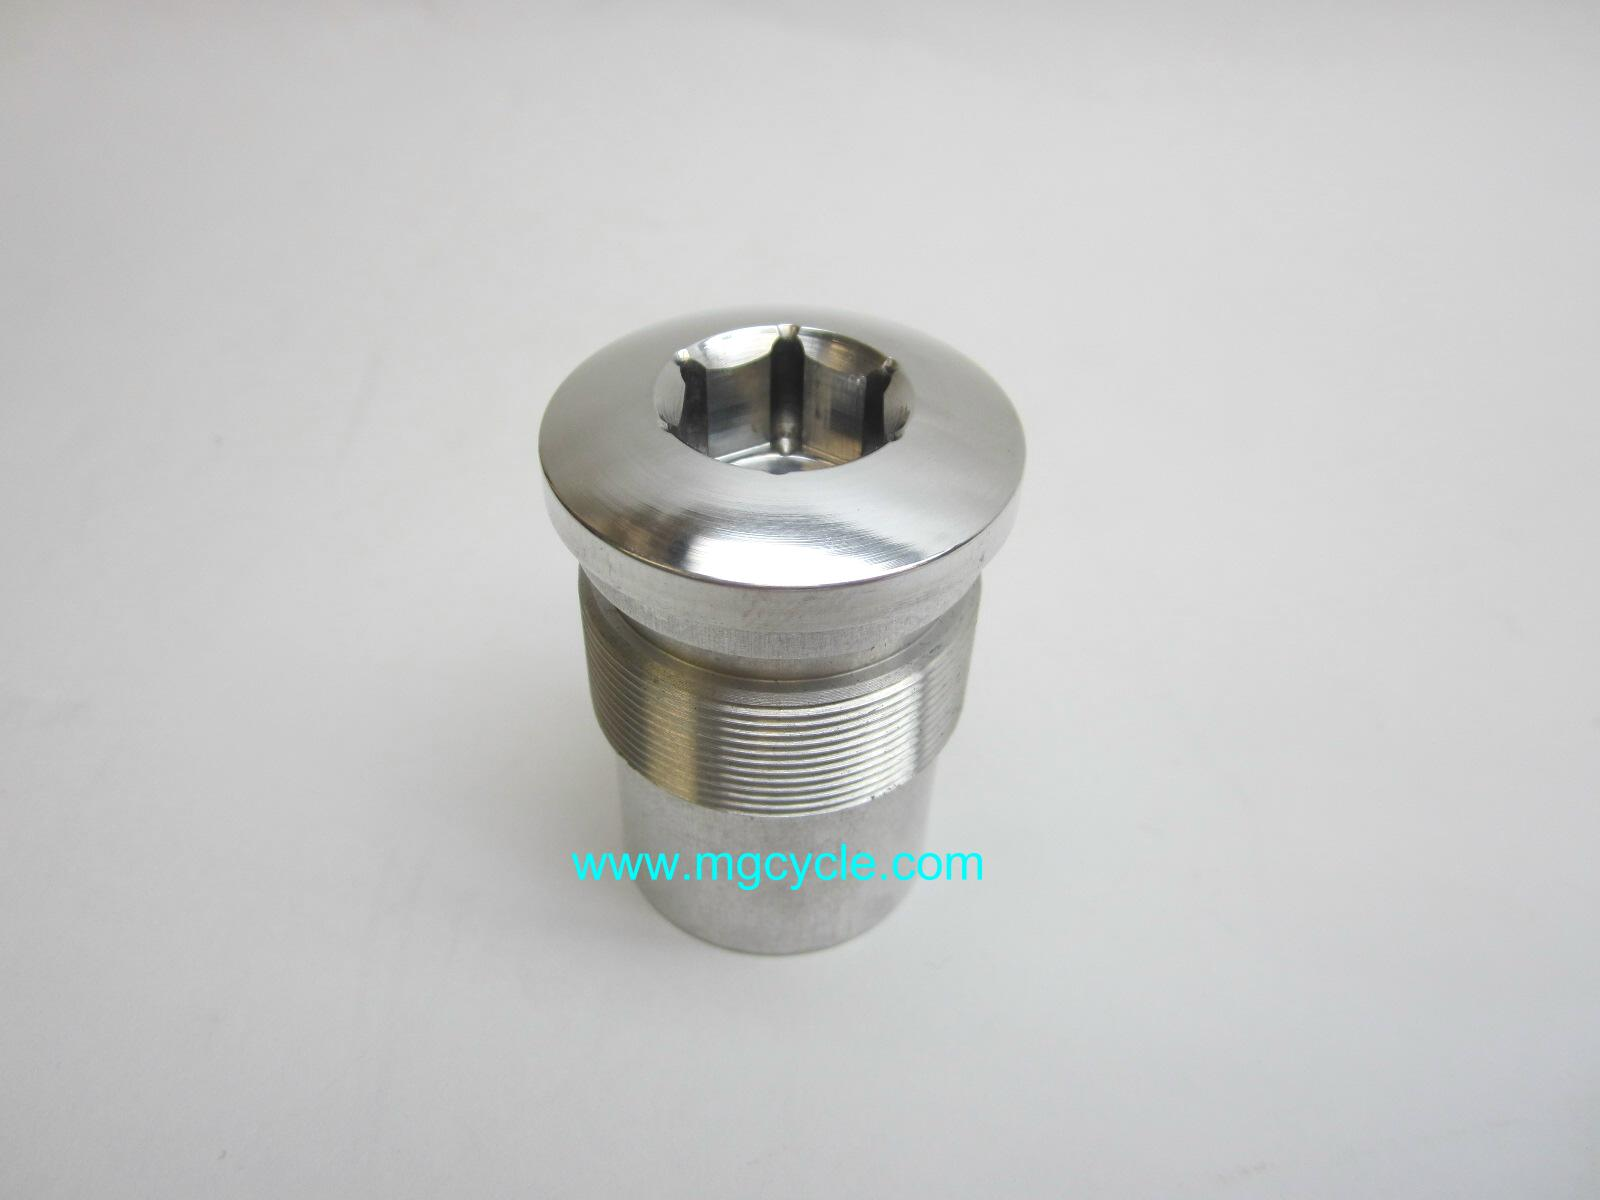 Aluminum fork top plug for 850 LeMans 1976-1978